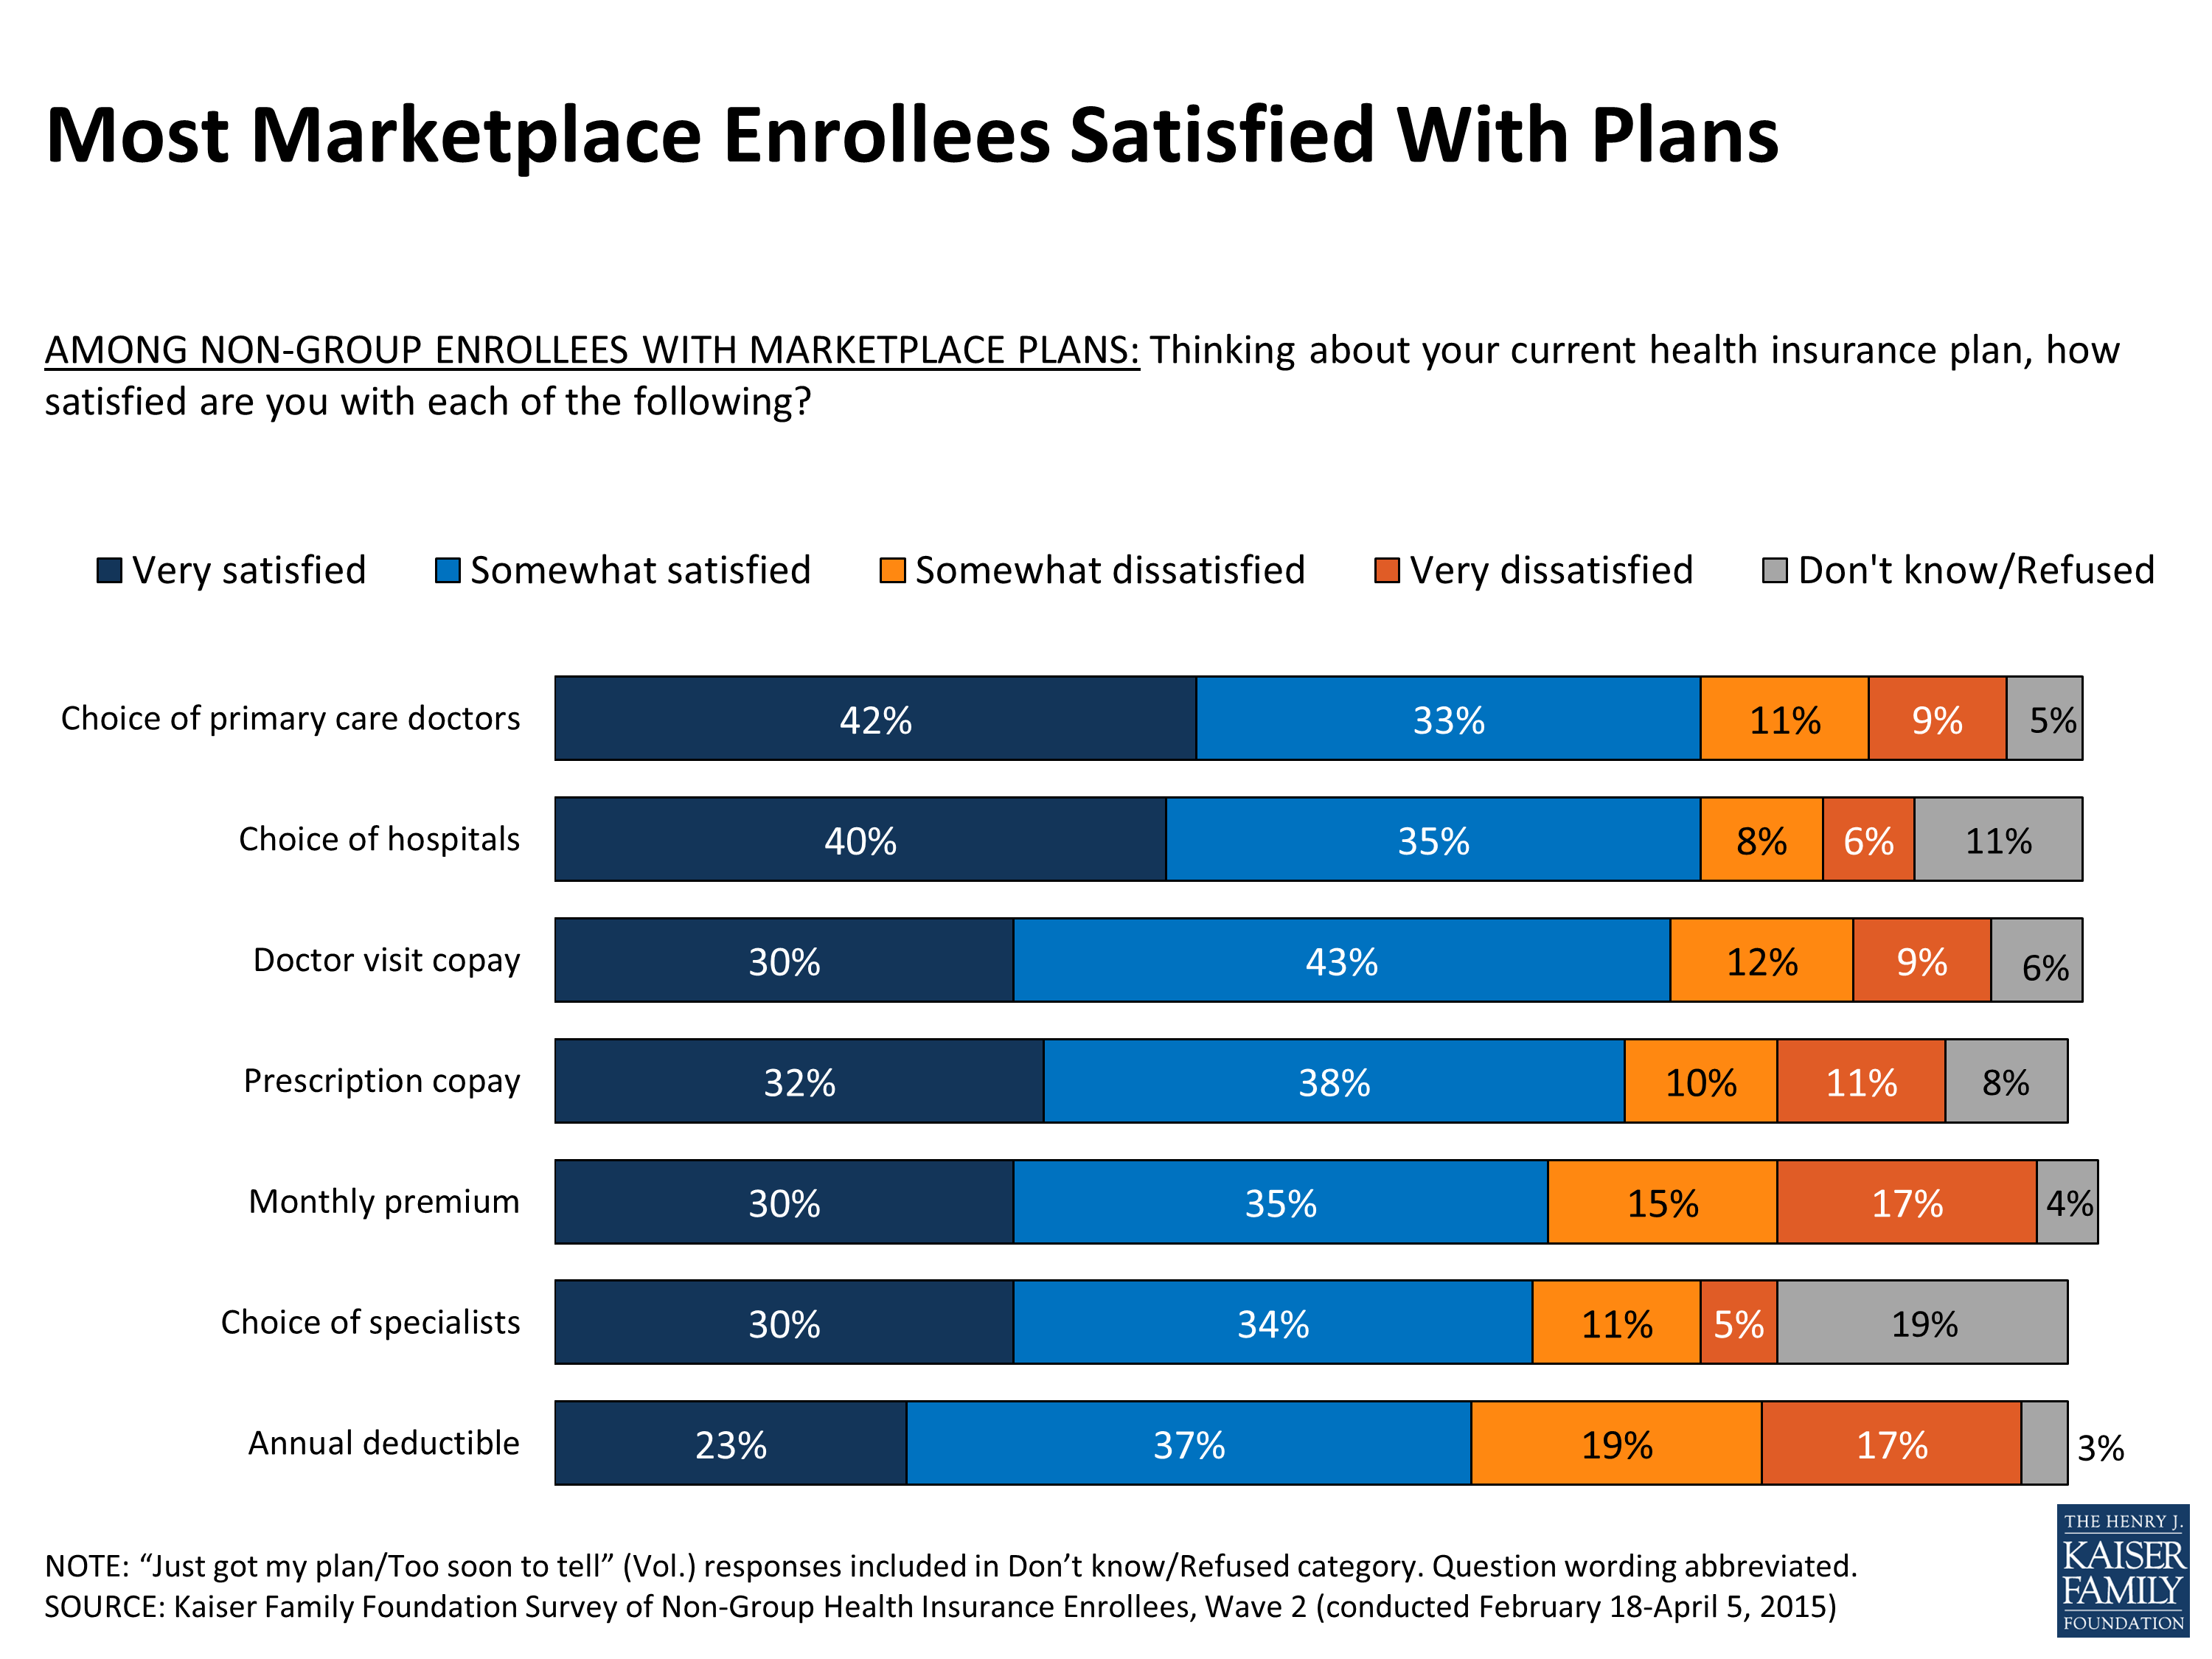 Survey of Non-Group Health Insurance Enrollees, Wave 2 | The Henry J